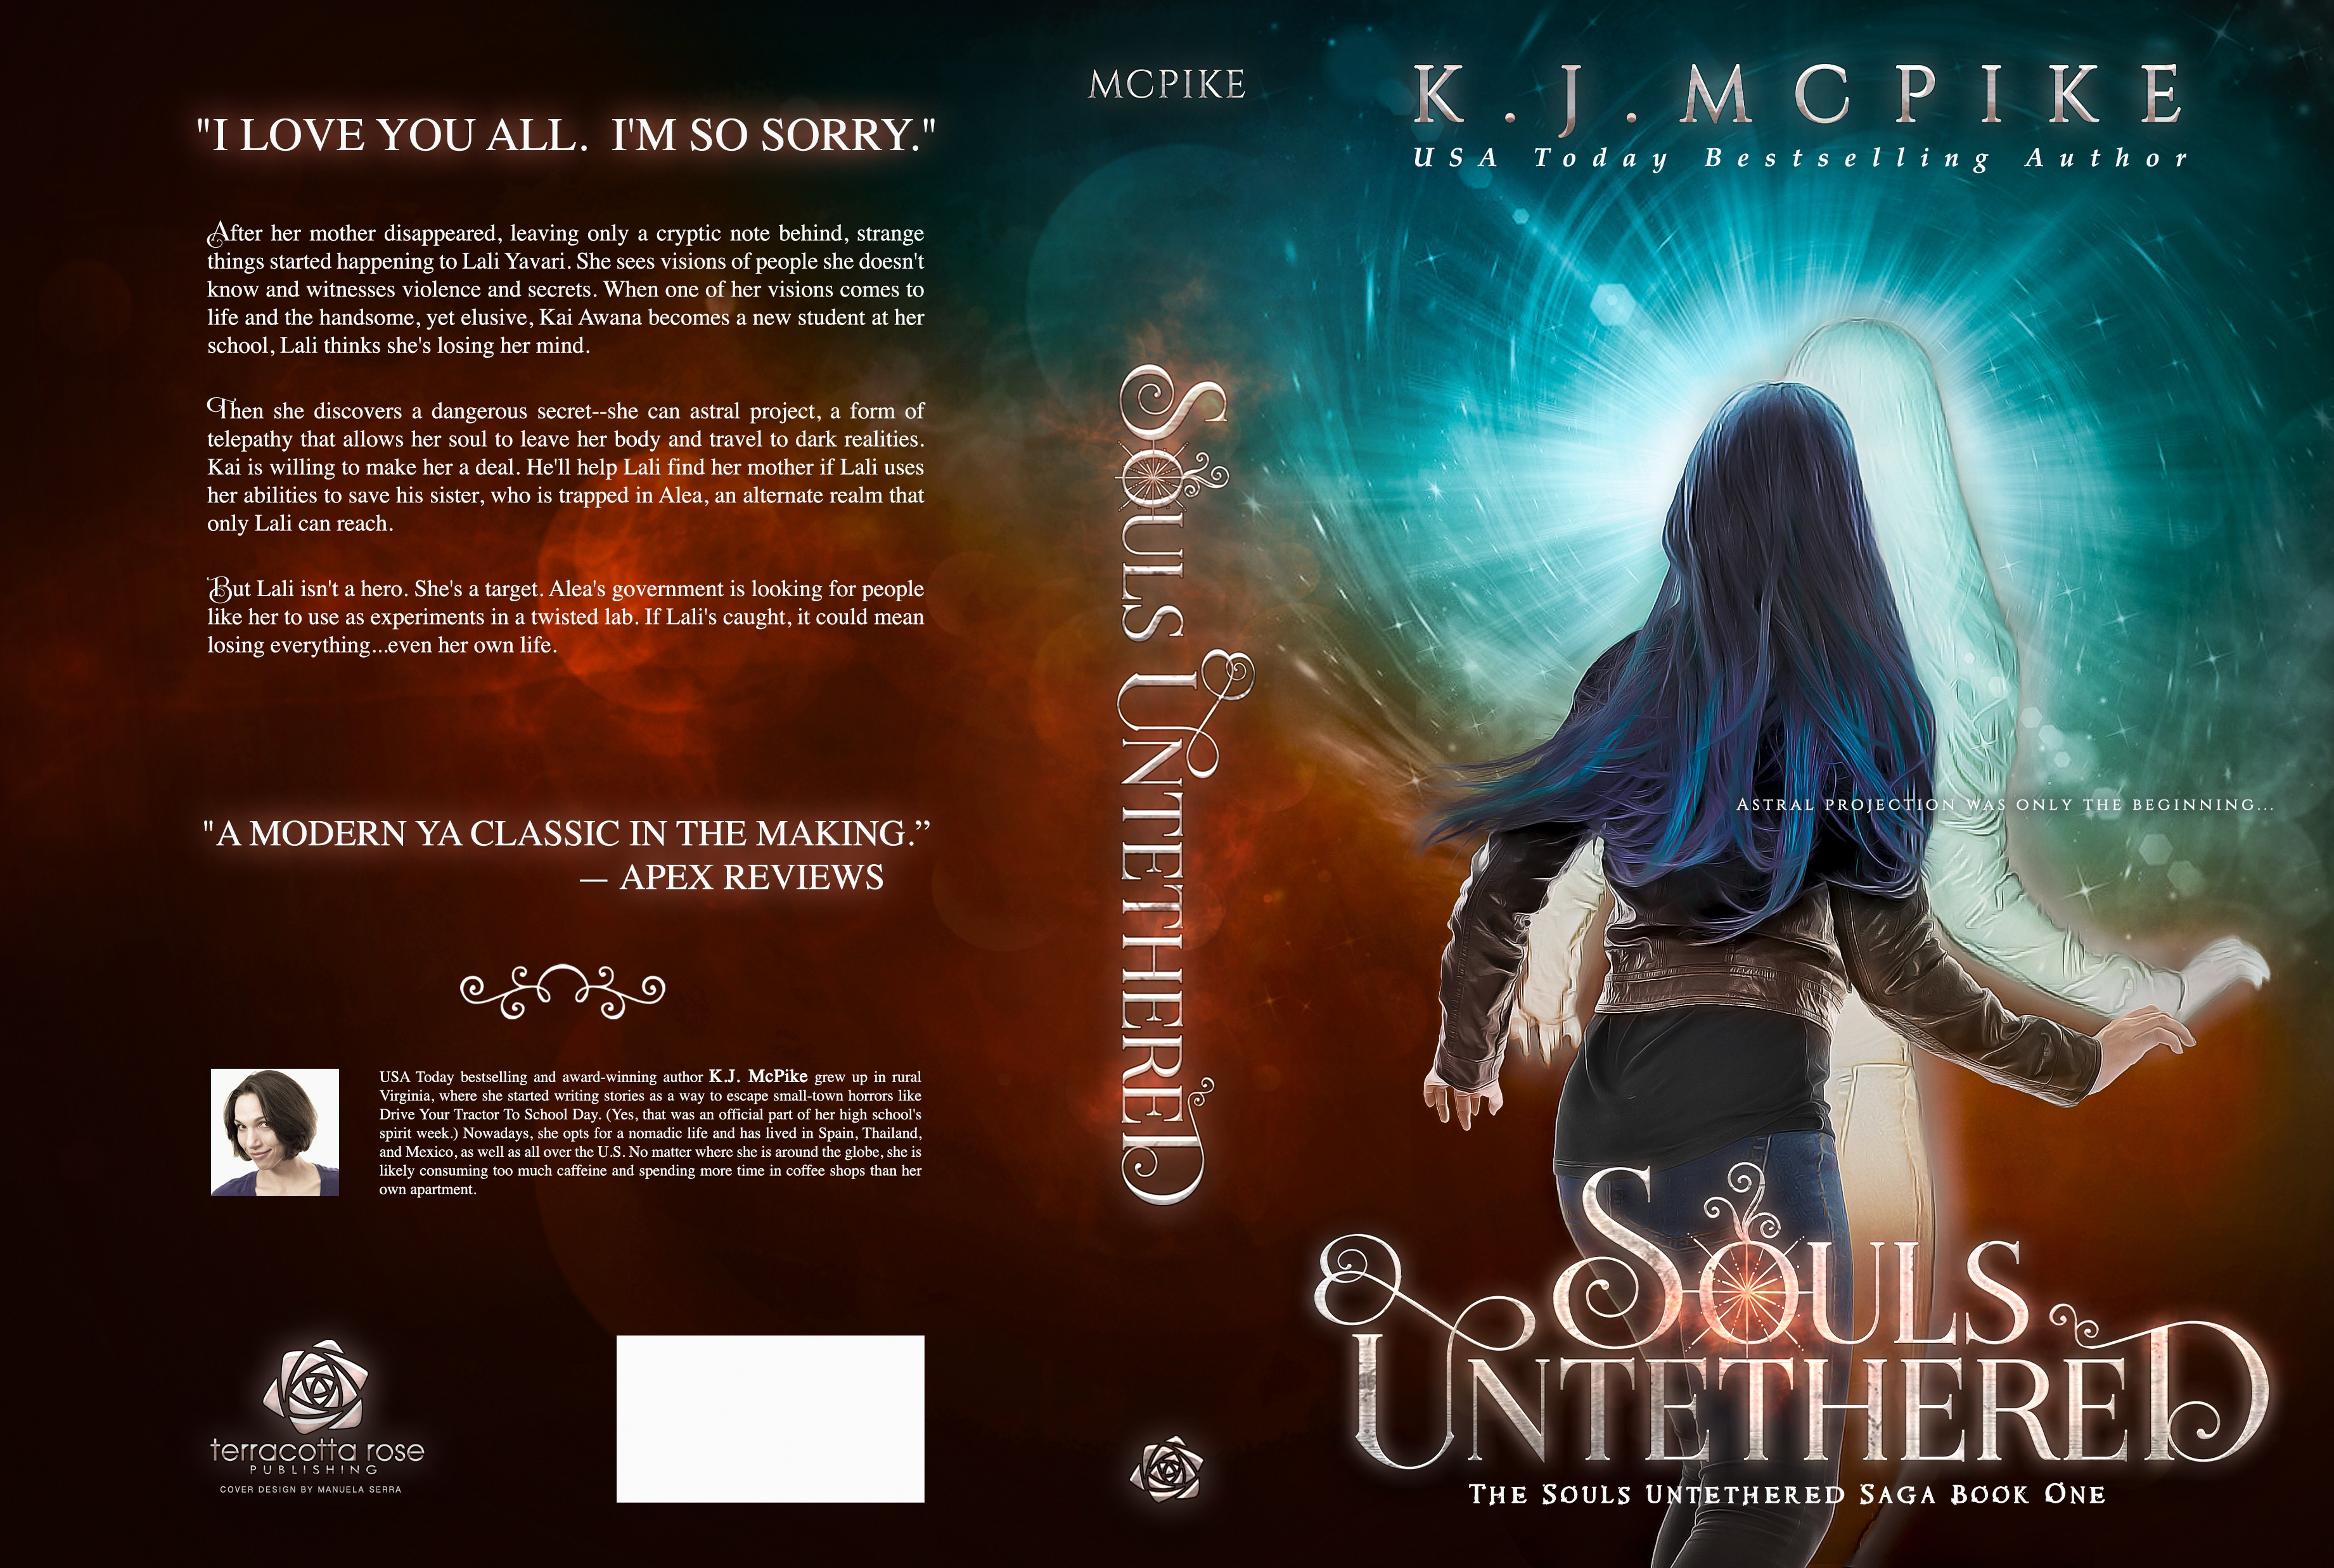 Design a compelling Young Adult Urban Fantasy cover